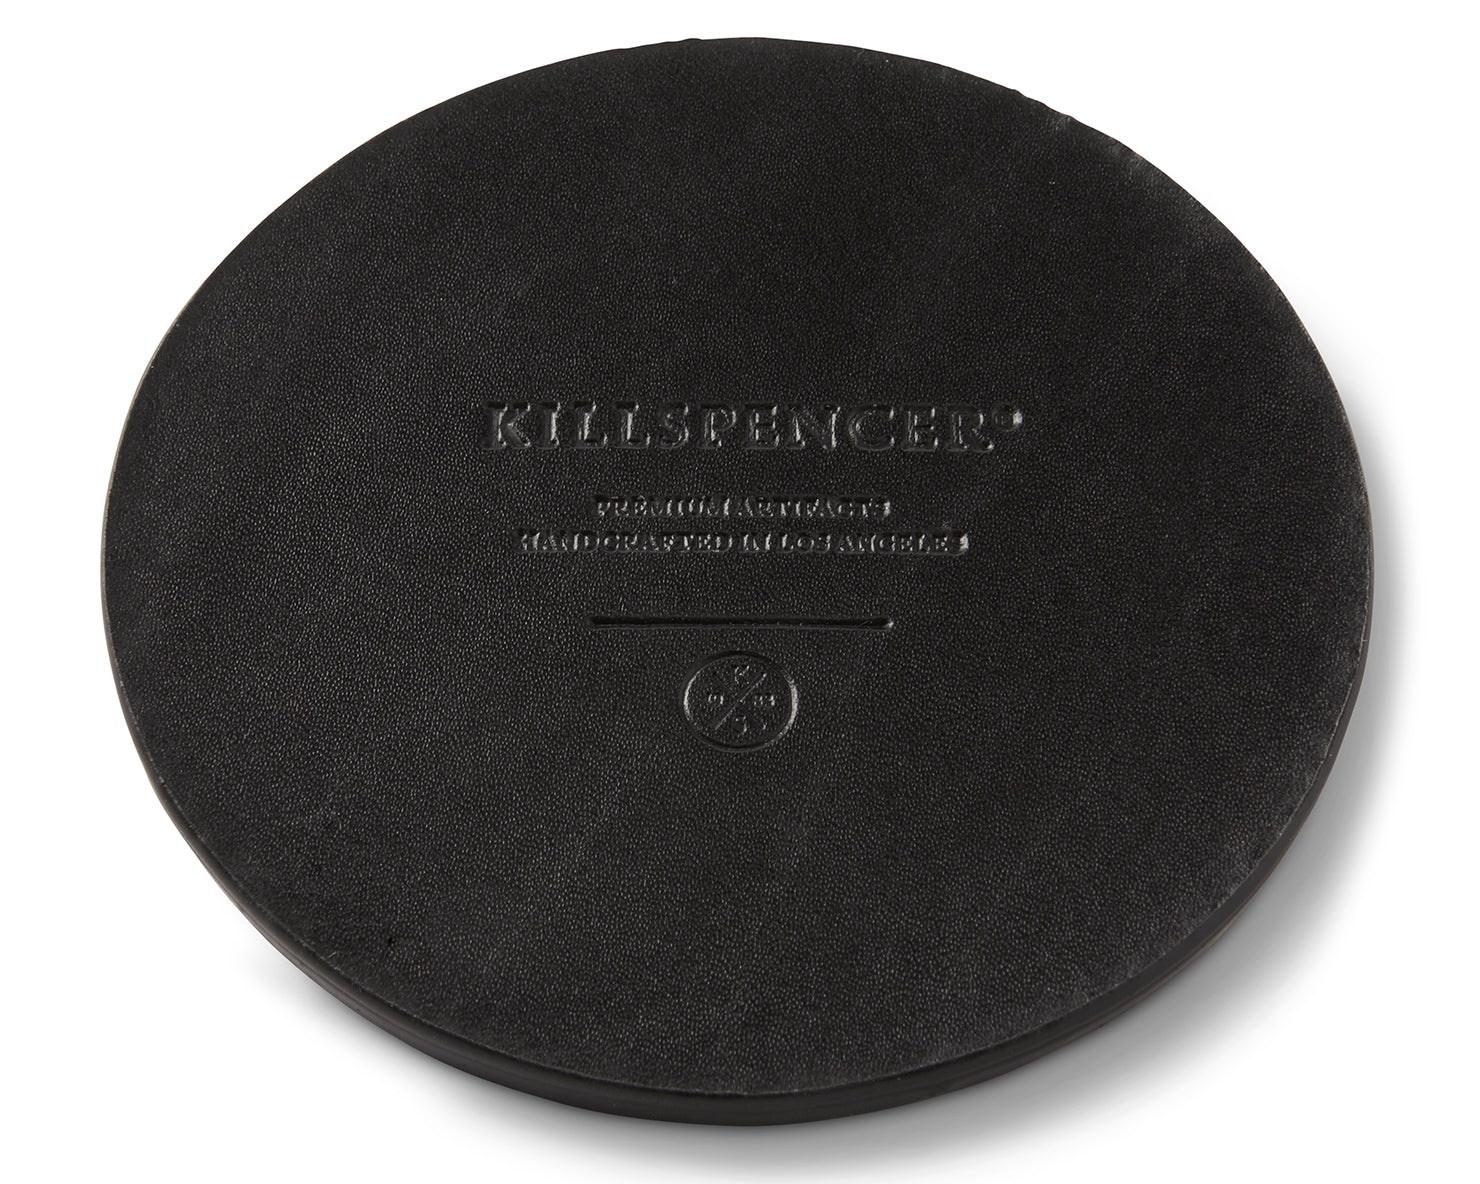 COASTER | KILLSPENCER® - Black Leather